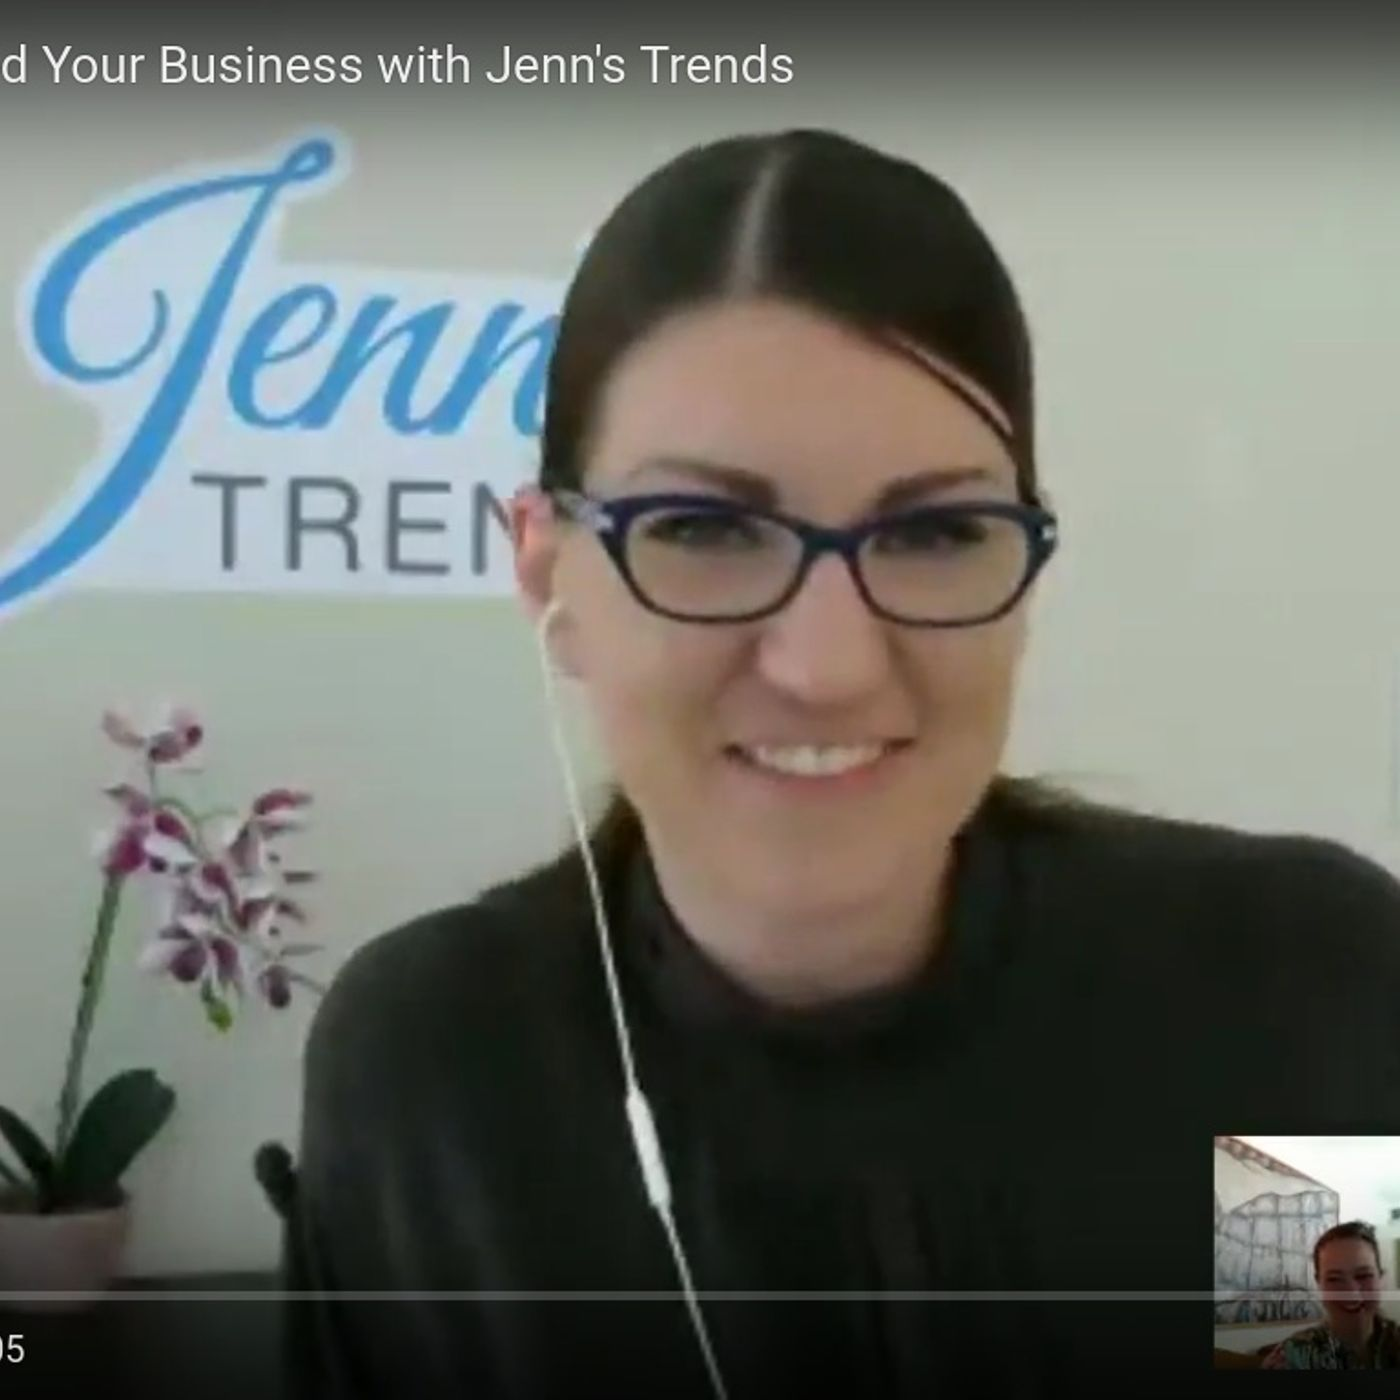 Instagram Your Life and Your Business with Jenn's Trends